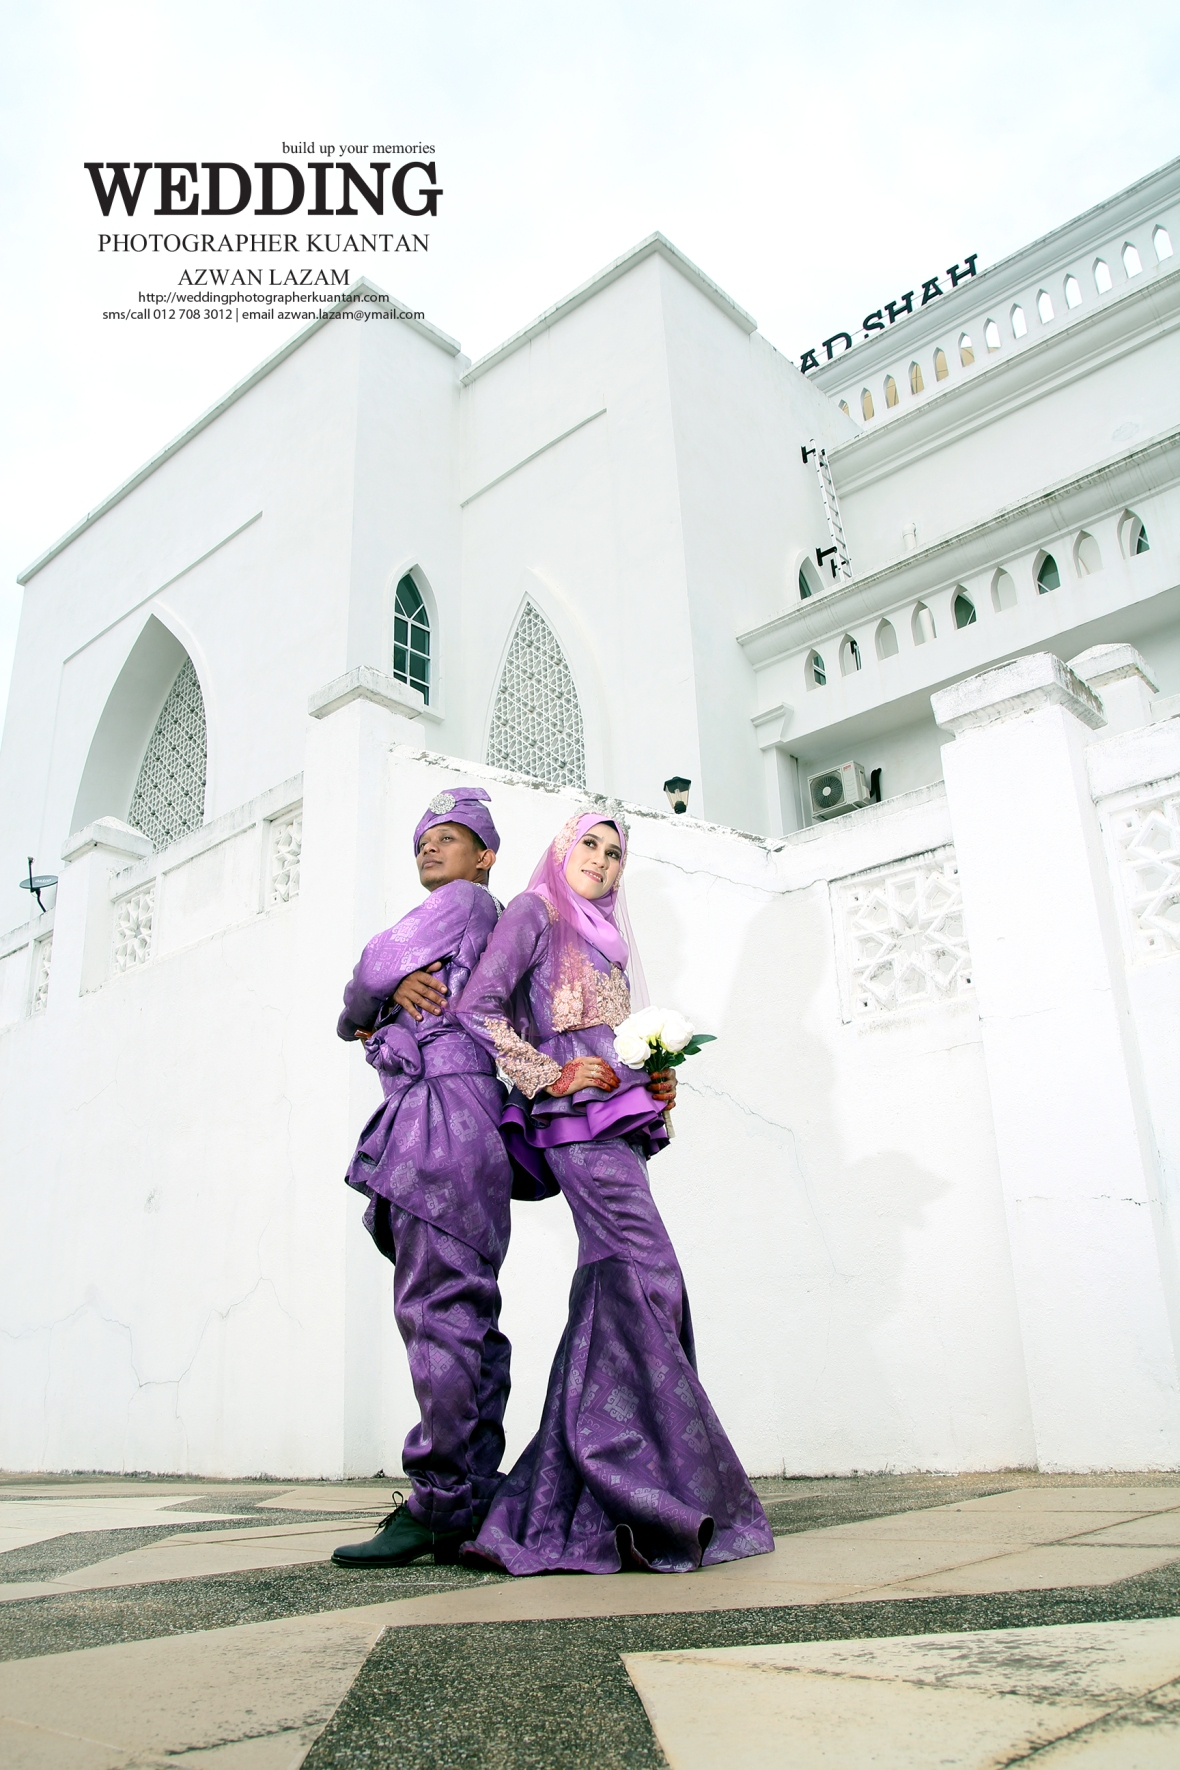 wedding-photographer-kuantan-promo-3